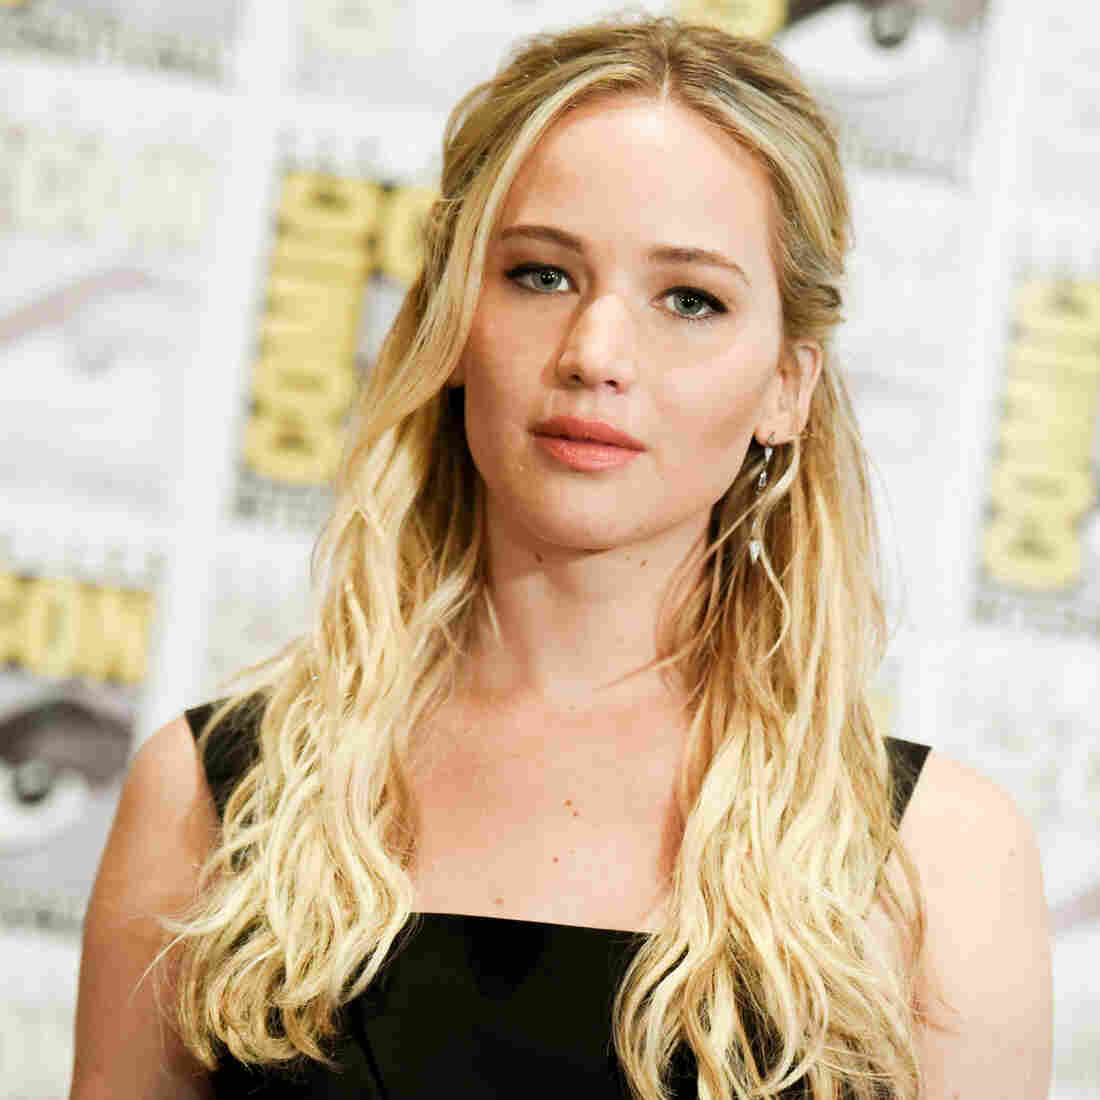 Jennifer Lawrence attends a media event for The Hunger Games: Mockingjay Part 2 in San Diego in July.